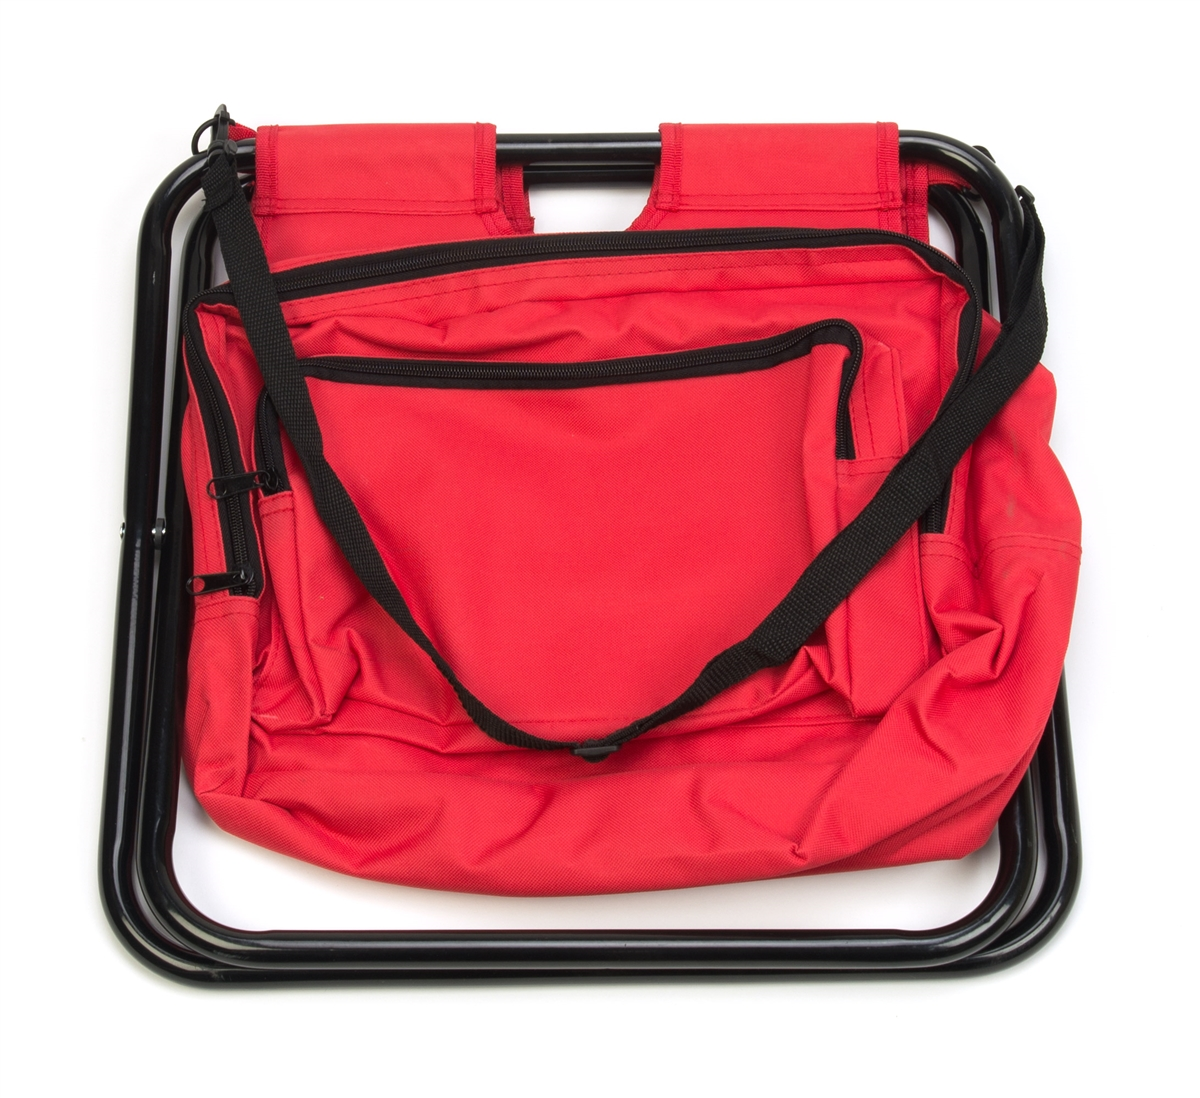 Portable Folding Camp Stool with Storage Pouch by  : STOOL FLDNG RED 3 from www.trademarkinnovations.com size 1200 x 1098 jpeg 651kB